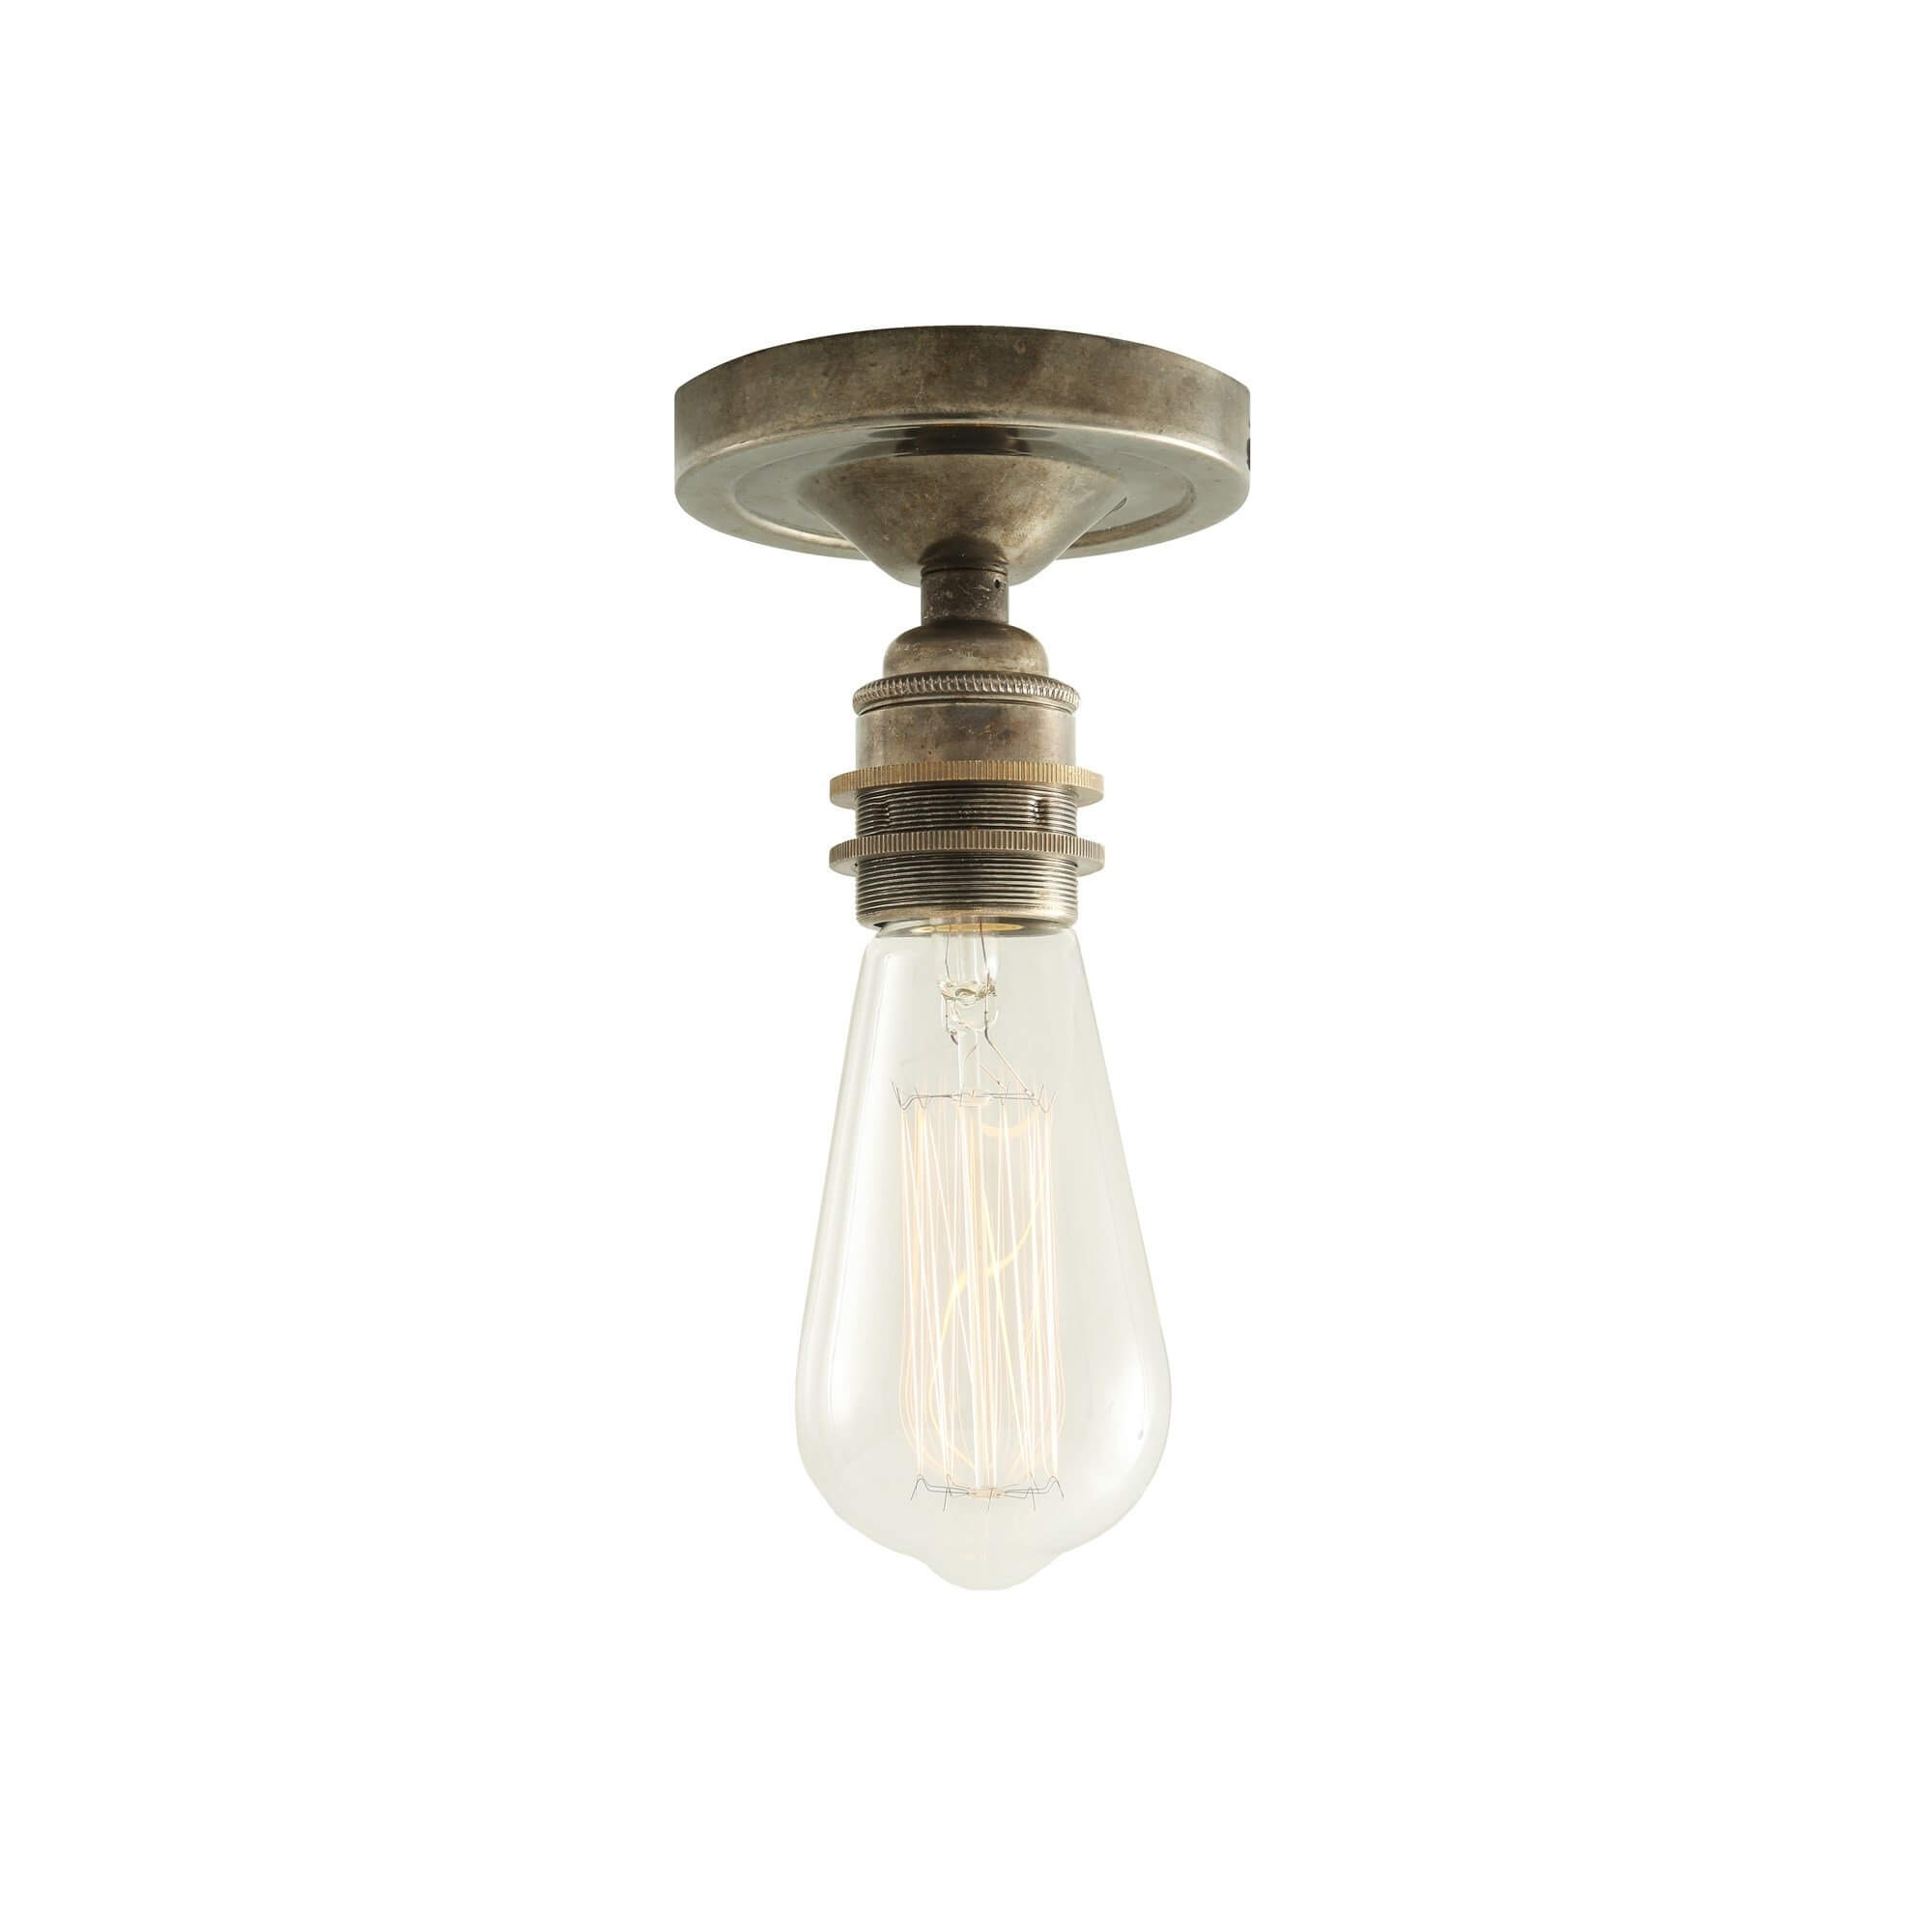 Industrial Ceiling Light Fitting